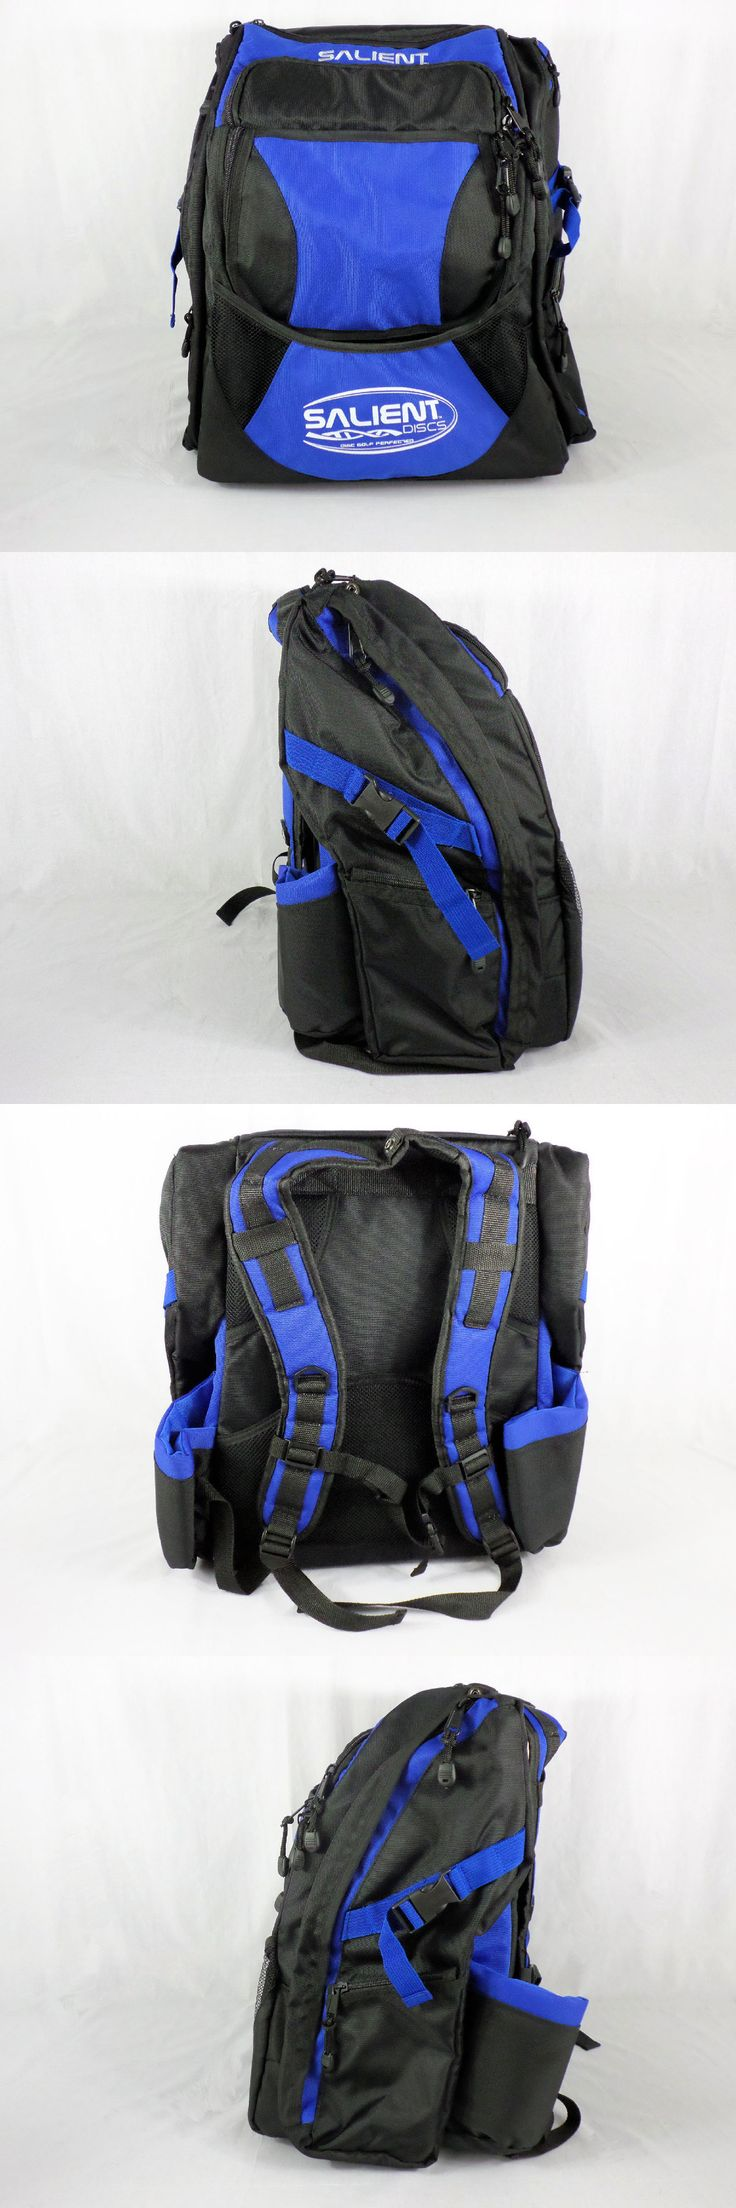 Disc Golf 20851: Blue Helix Style Disc Golf Backpack -> BUY IT NOW ONLY: $62.1 on eBay!